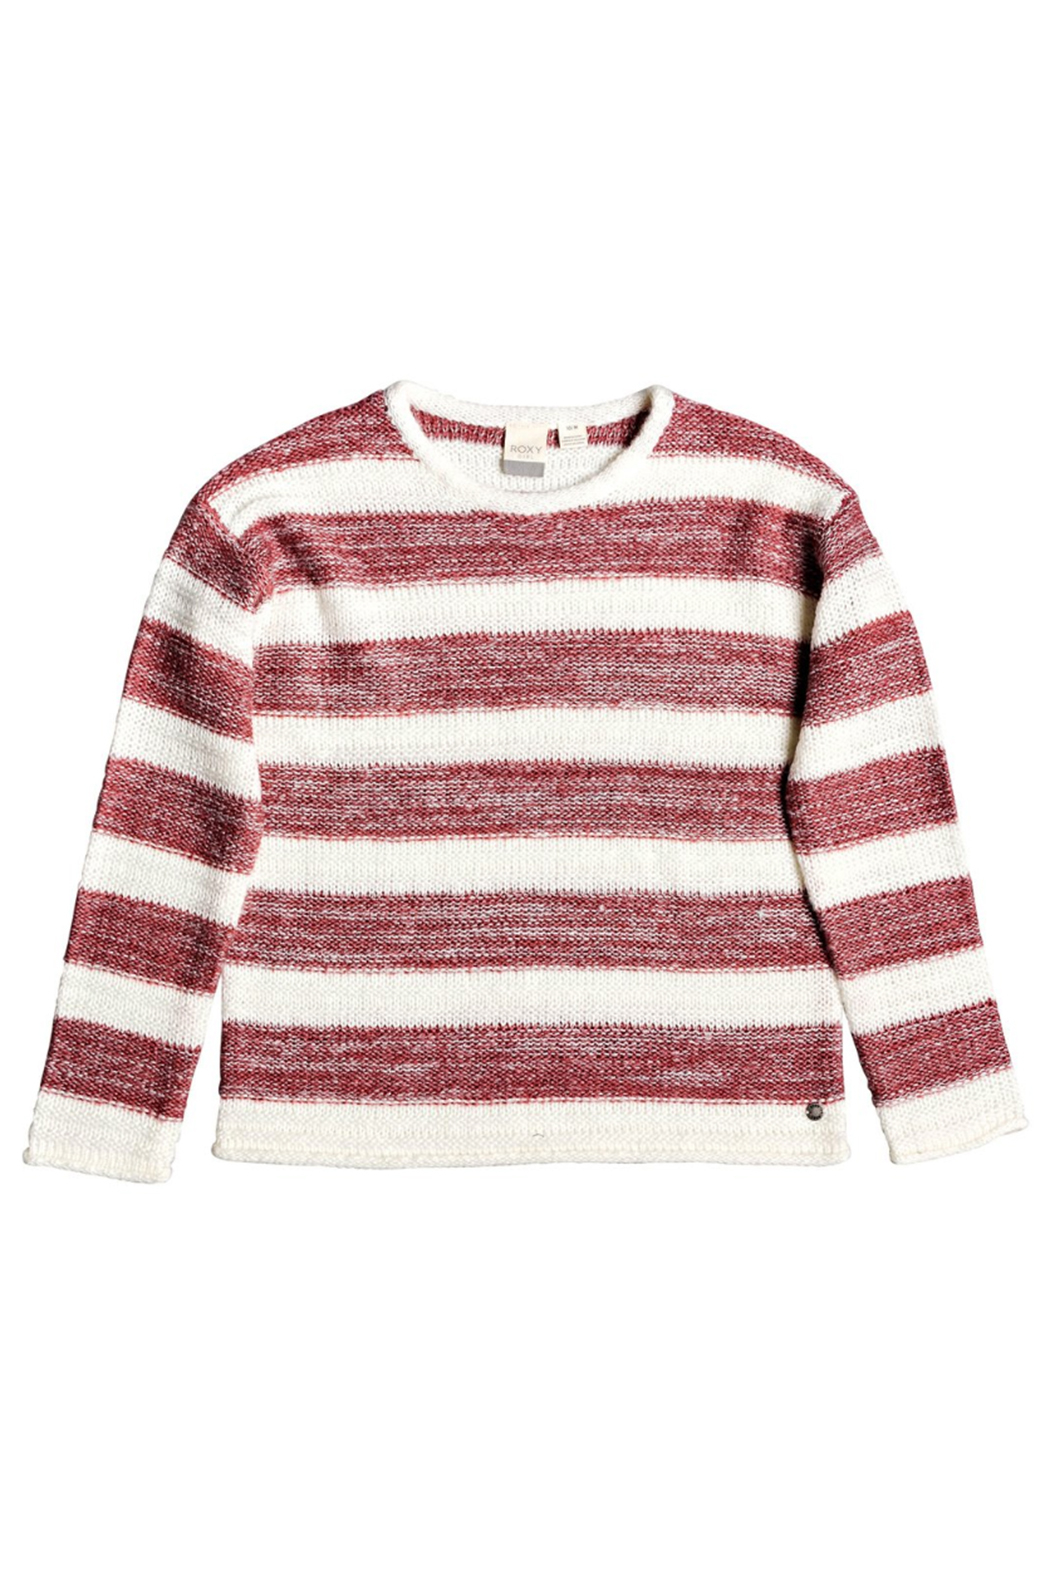 Roxy Little Wild Thing Sweater - Main Image